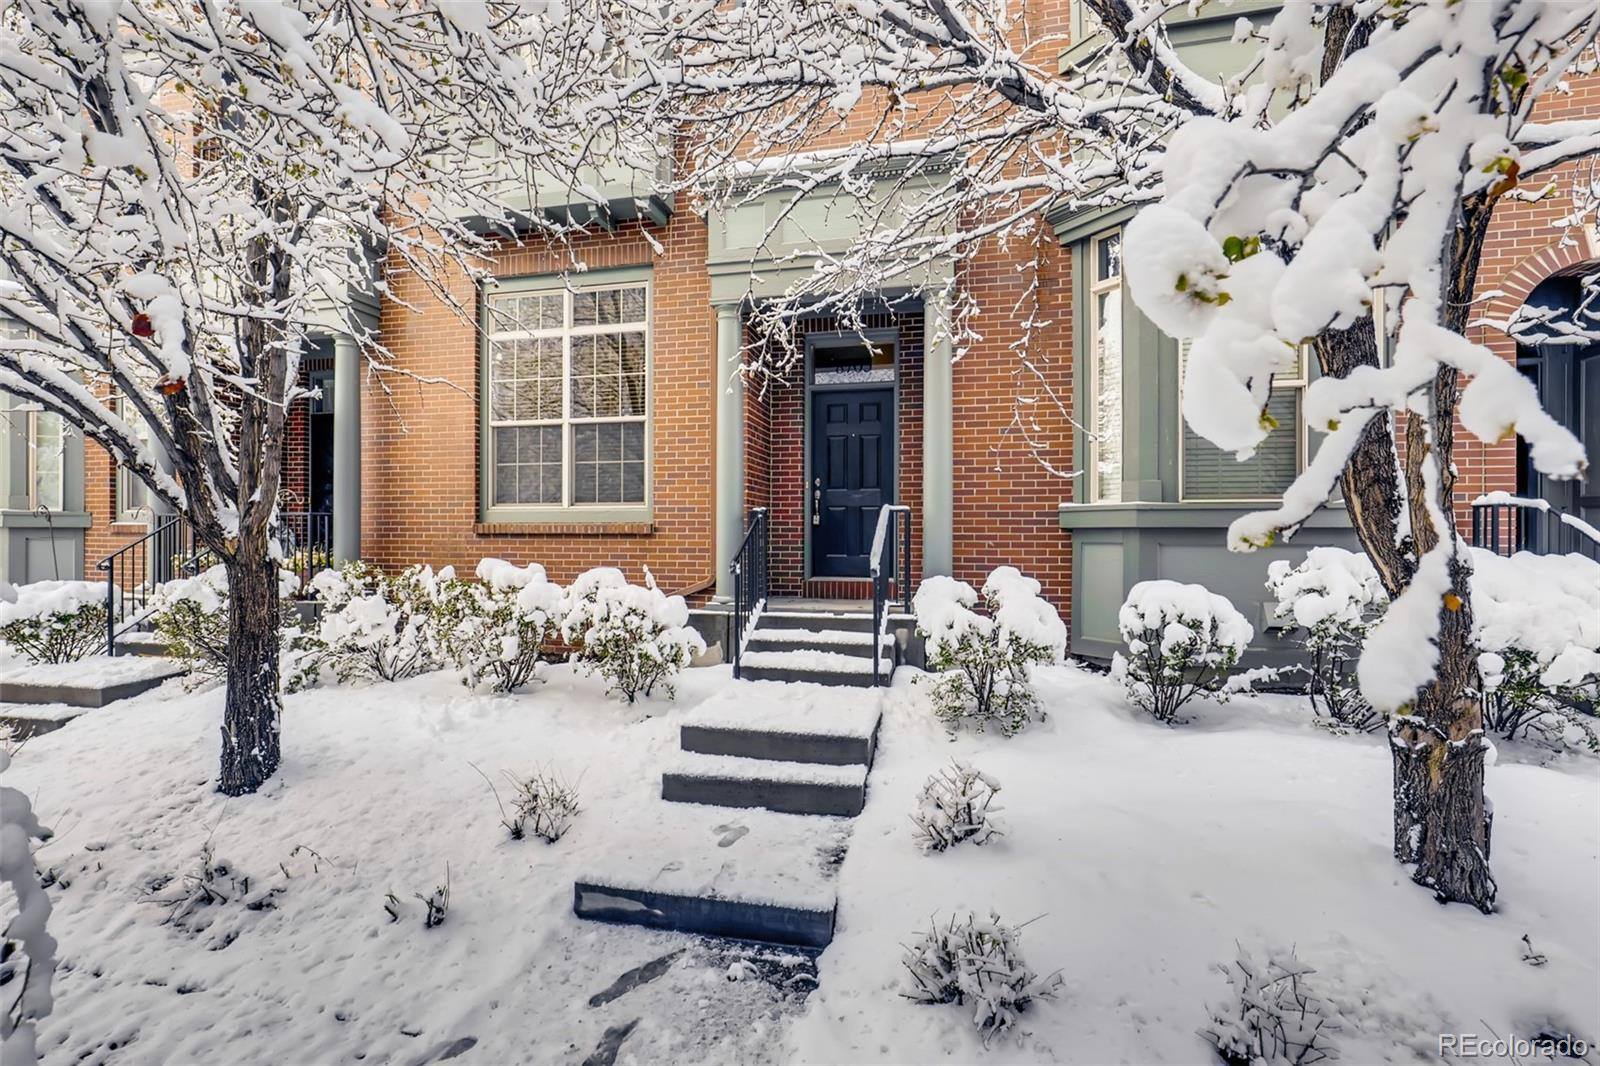 This is your chance to own a well maintained rowhome in the popular Central Park area. Walking distance to A-Train, restaurants, shopping, library, and Town Center. This home offers a private deck off of the kitchen, a private courtyard, a garage for private parking that enters into a mudroom. Granite countertops in the kitchen with cherry cabinets and all appliances included. Upper level laundry with 3 bedrooms. Home Sweet Home!